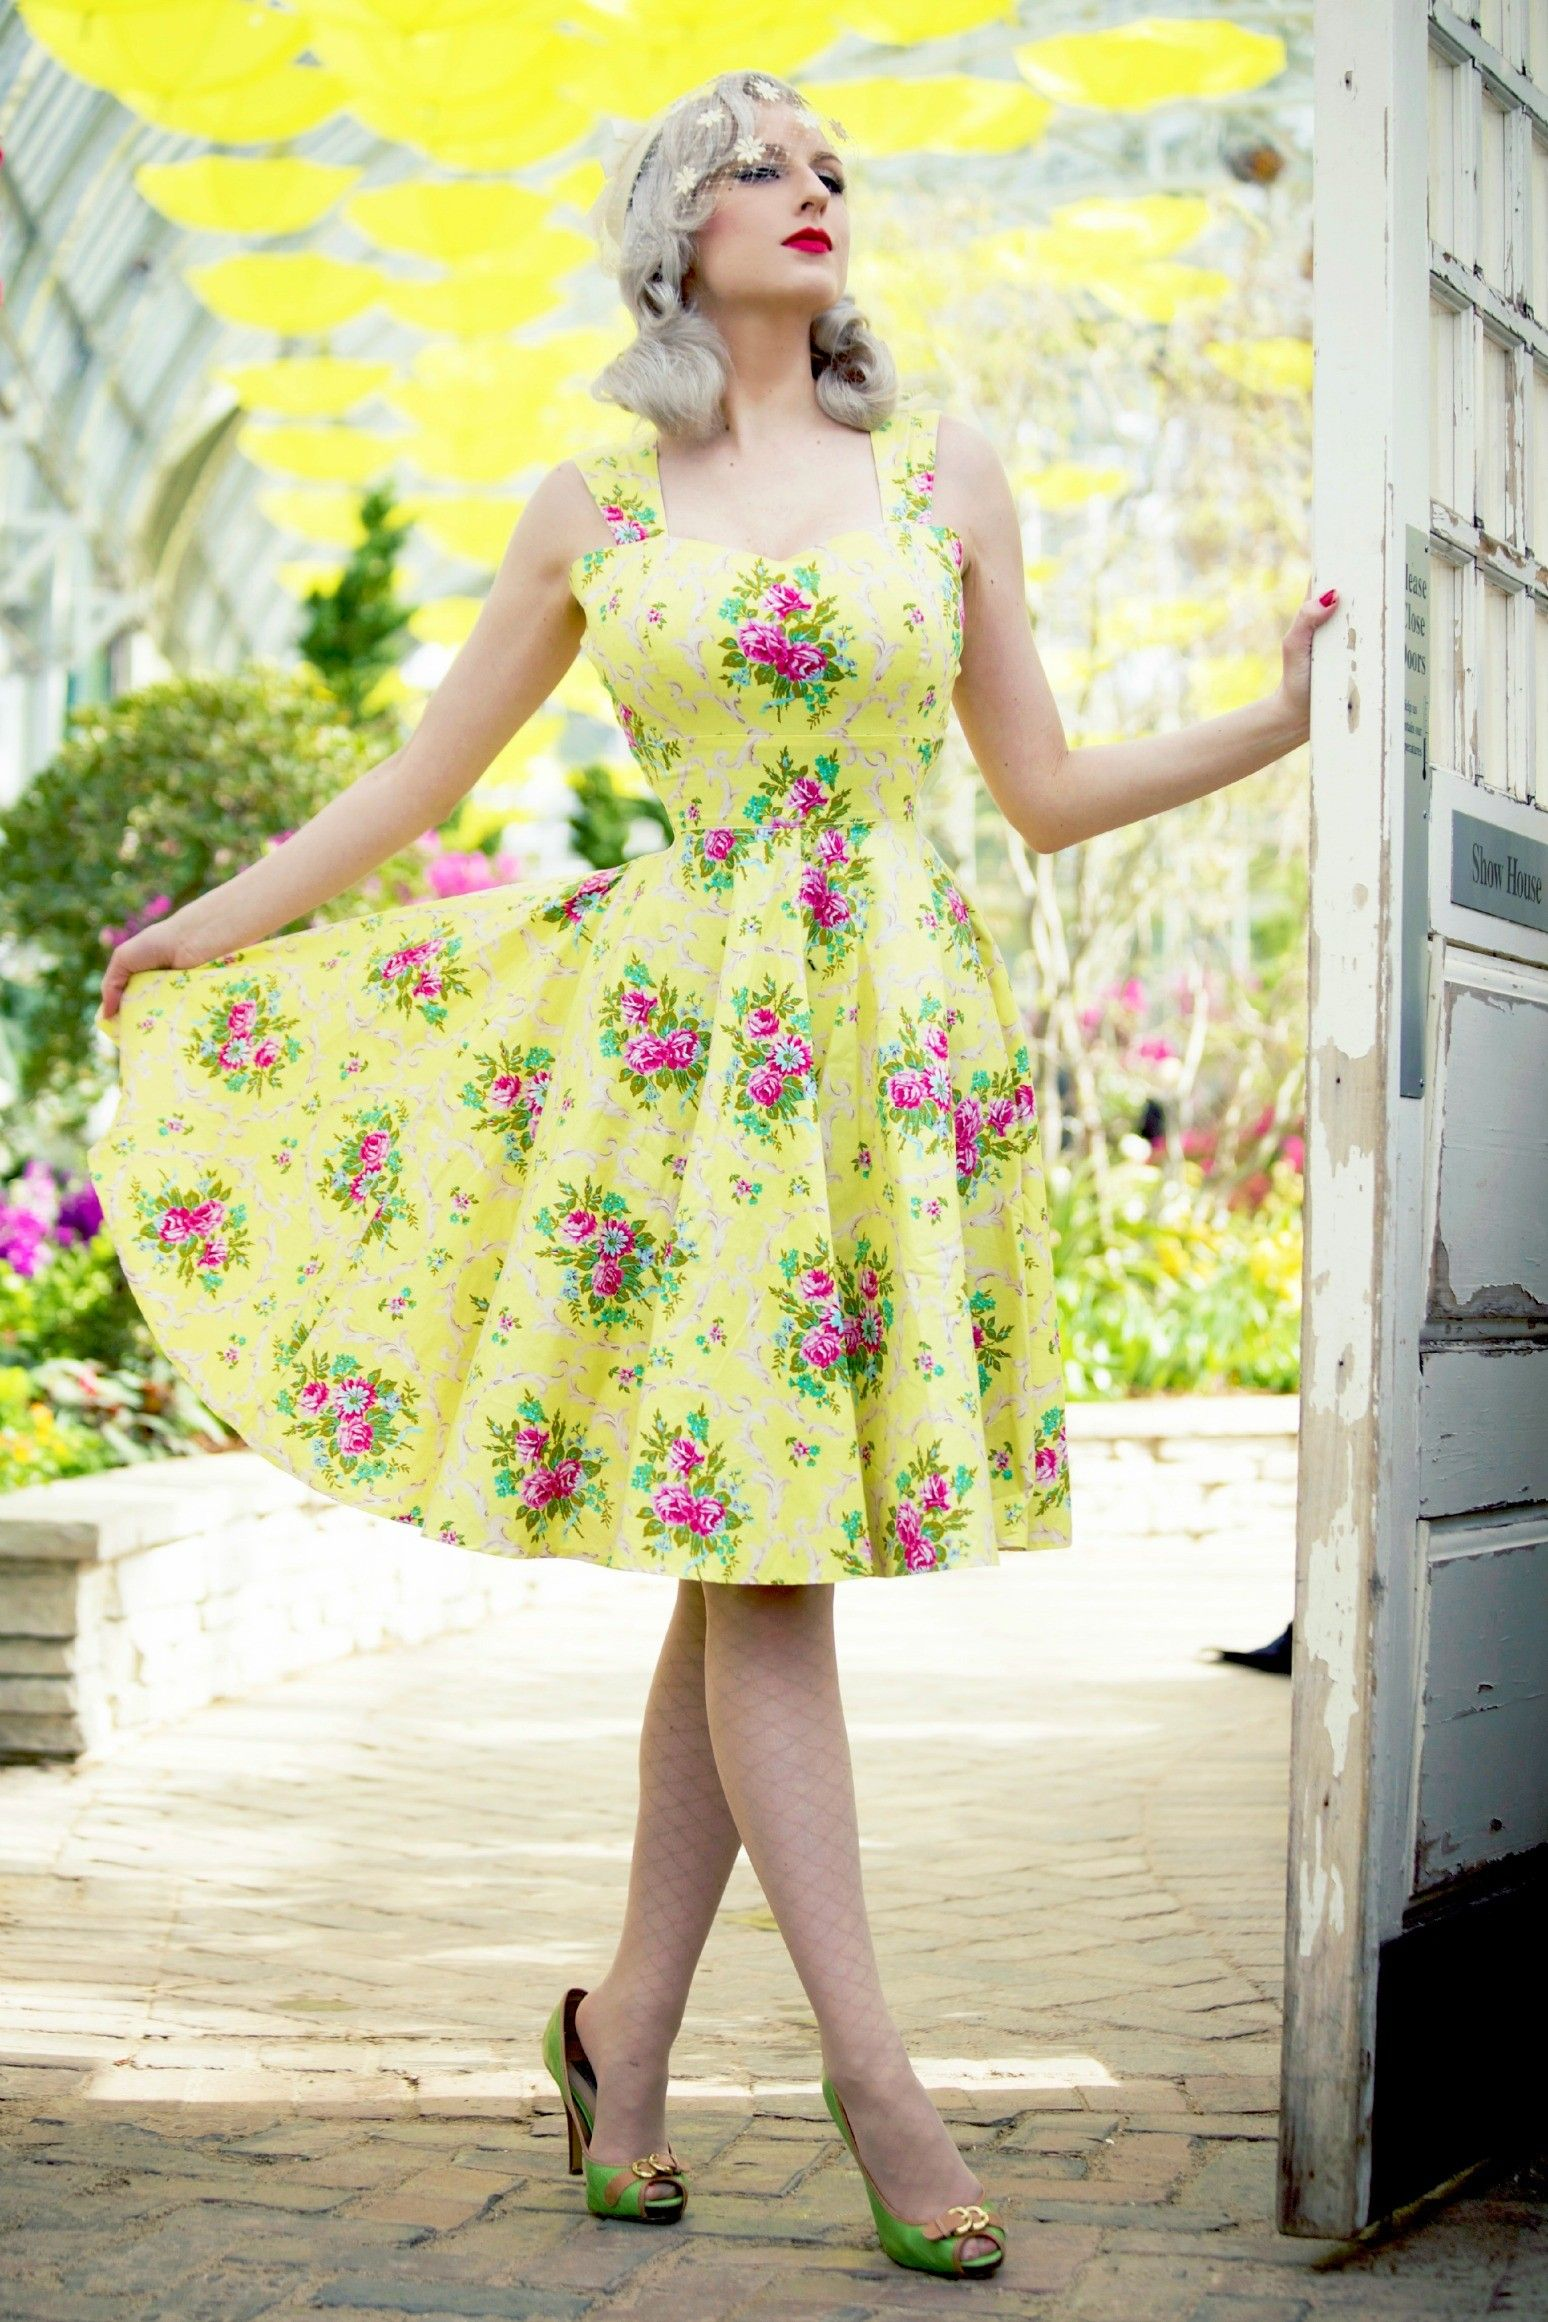 yellow floral 50s dress vintage style pigtails and